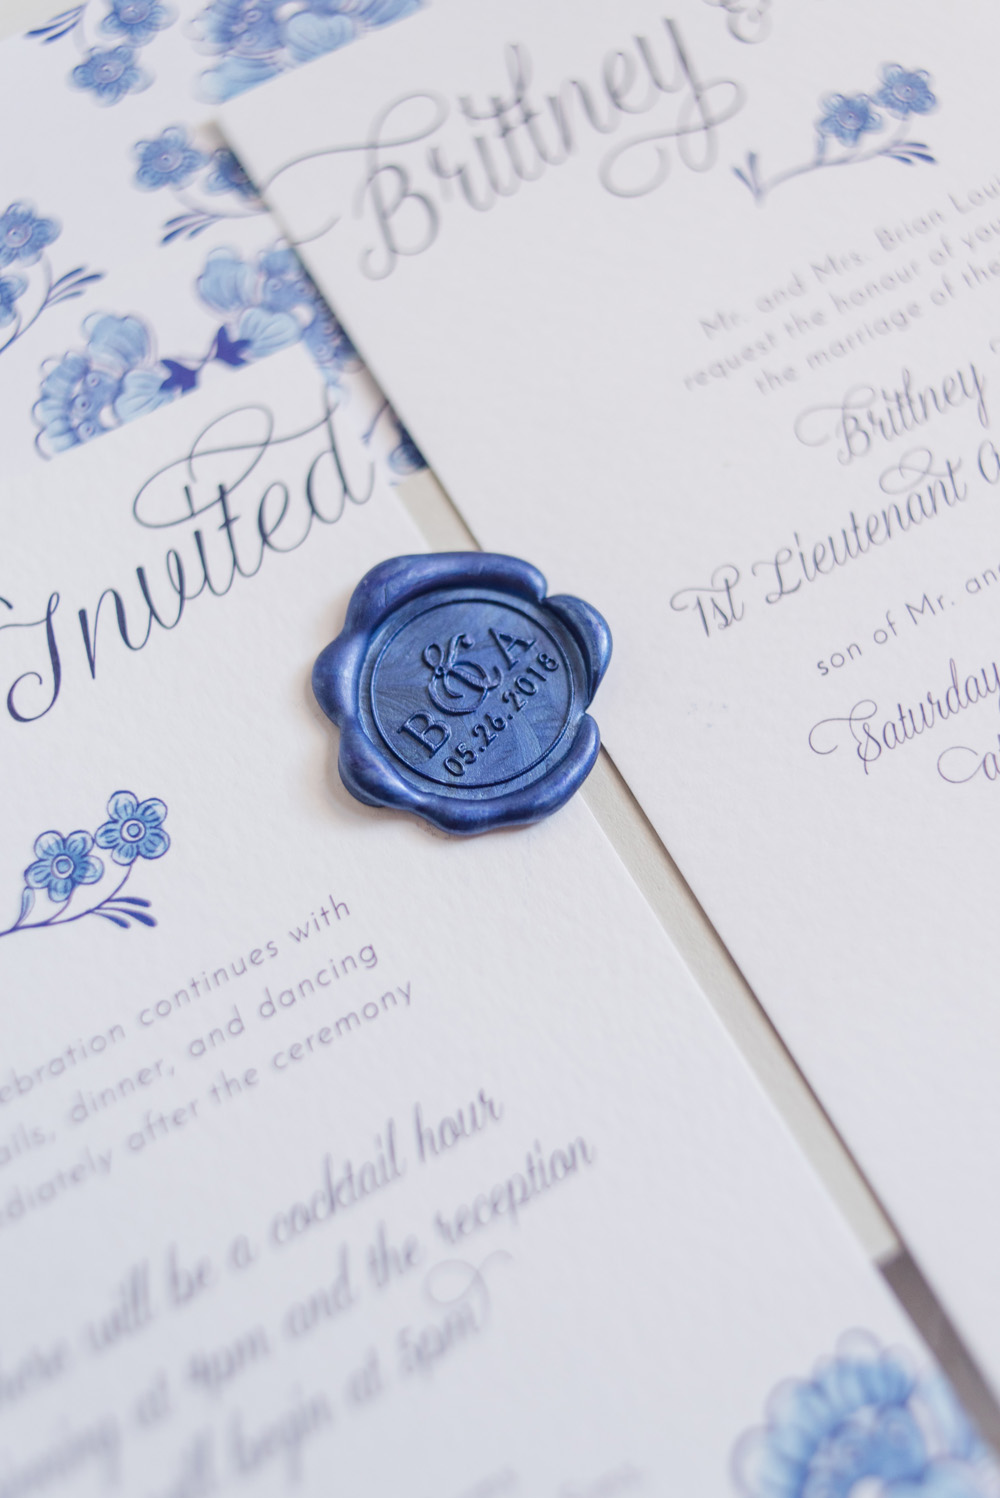 Brittney and Anthony North Carolina Wedding, Spring Wedding, Barn Wedding, Church Wedding, Unique Bespoke Wedding Stationery, Custom Wedding Stationery, Pink and Blue Wedding14.jpg